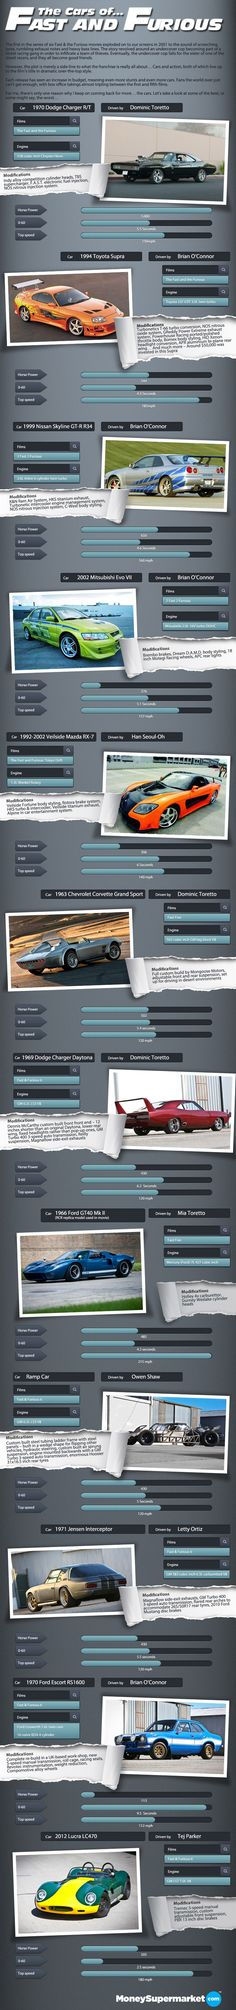 Cars of The Fast and the Furious [Infographic]